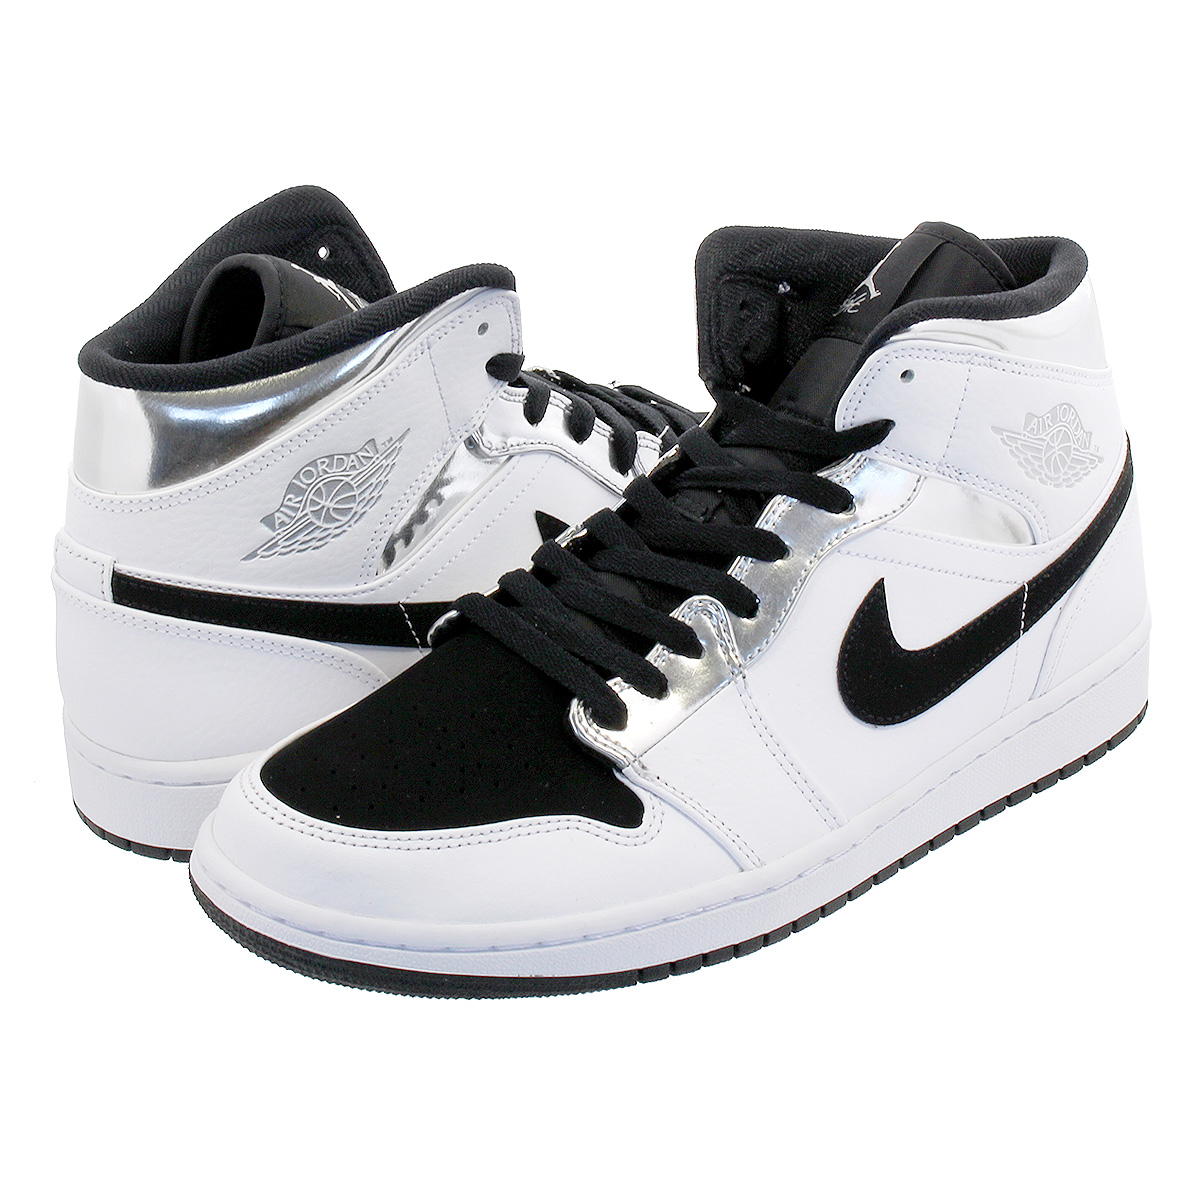 super popular 56878 81149 NIKE AIR JORDAN 1 MID Nike Air Jordan 1 mid WHITE METALLIC SILVER BLACK ...